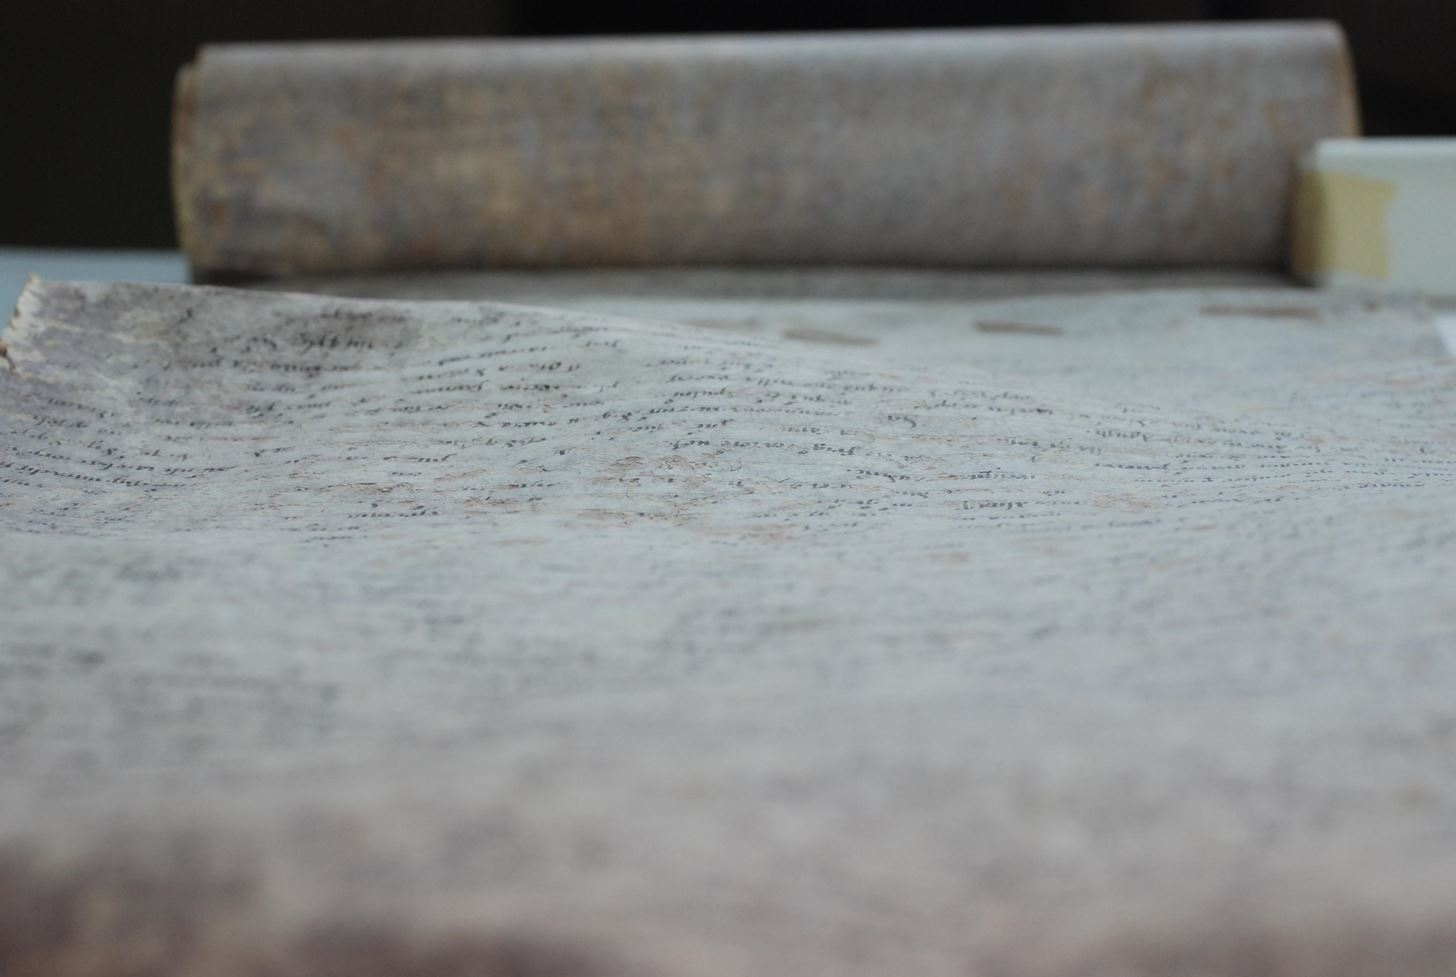 Out Damn Spot! Researchers Discover Microbes Are the Reason for Stains on Ancient Scrolls